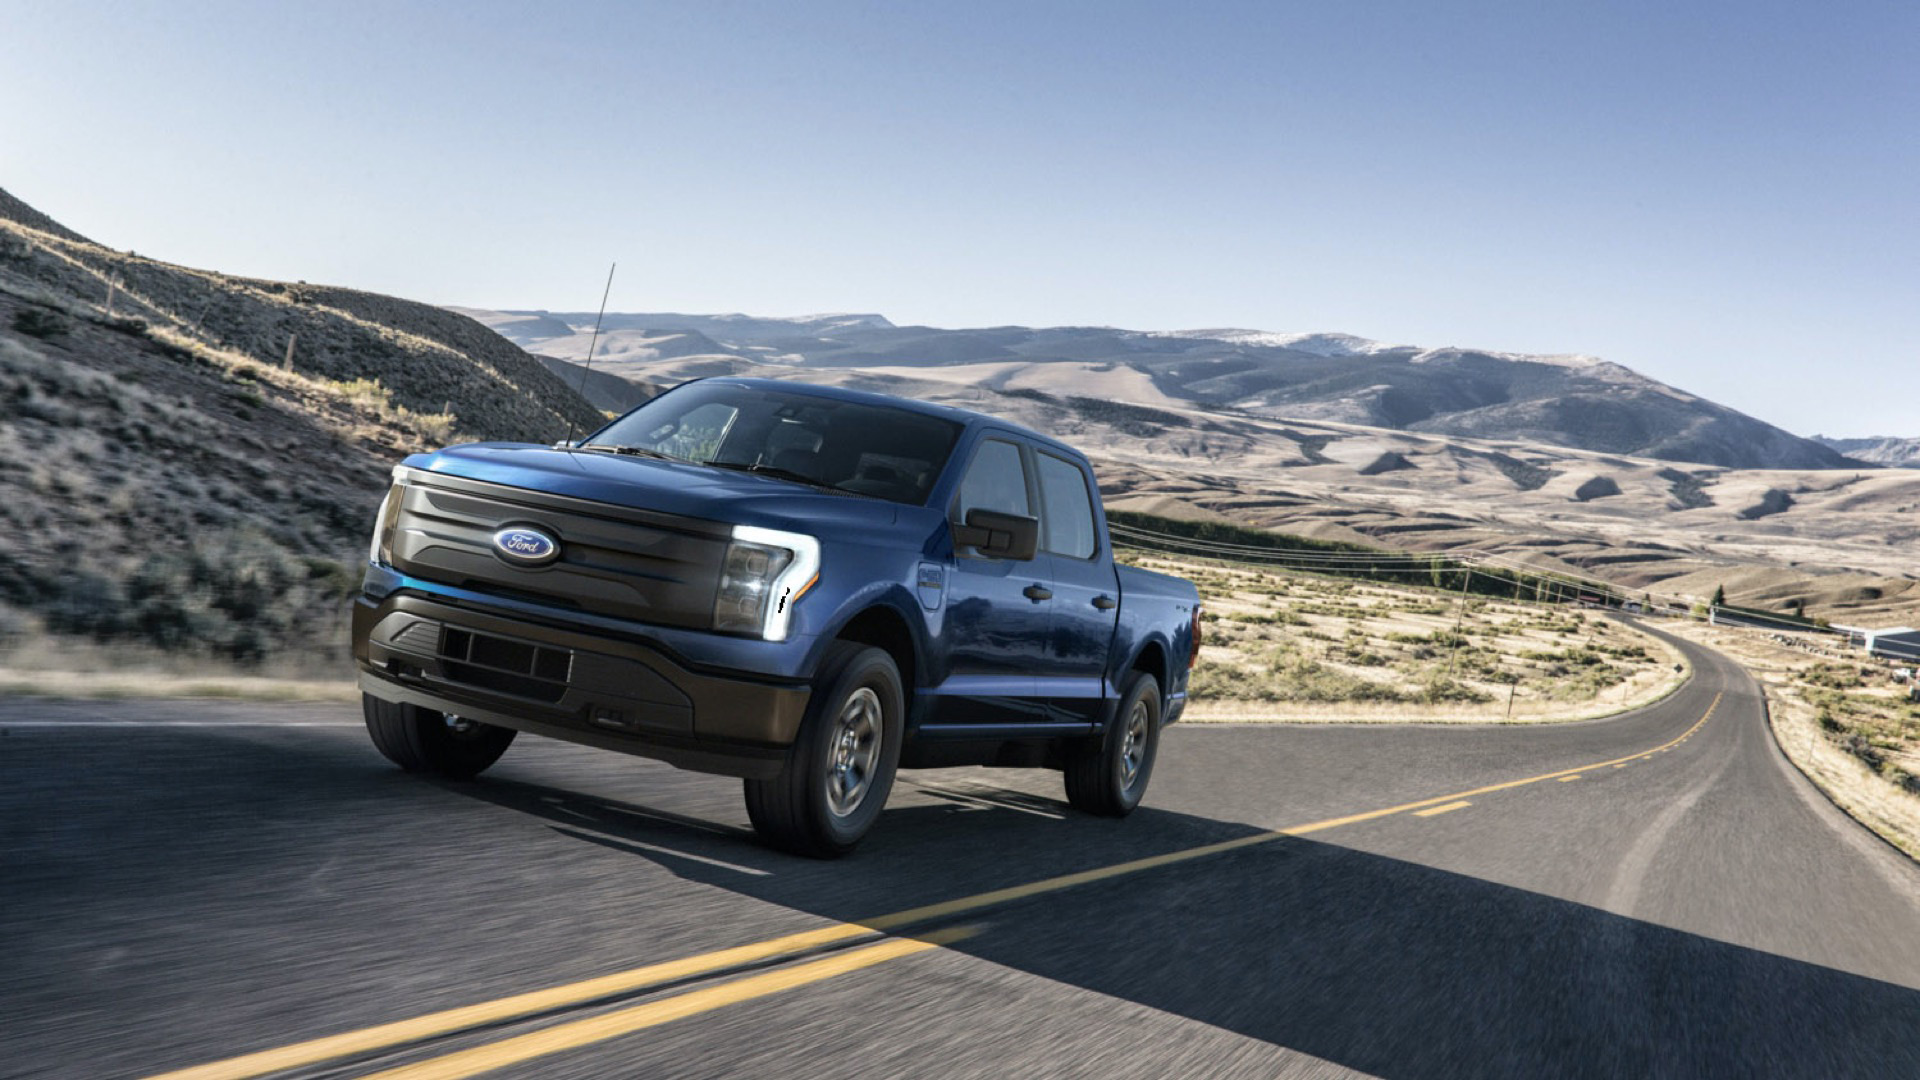 Ford F-150 Lightning: 85-mpg gasoline vehicle footprint, will keep getting cleaner with the grid